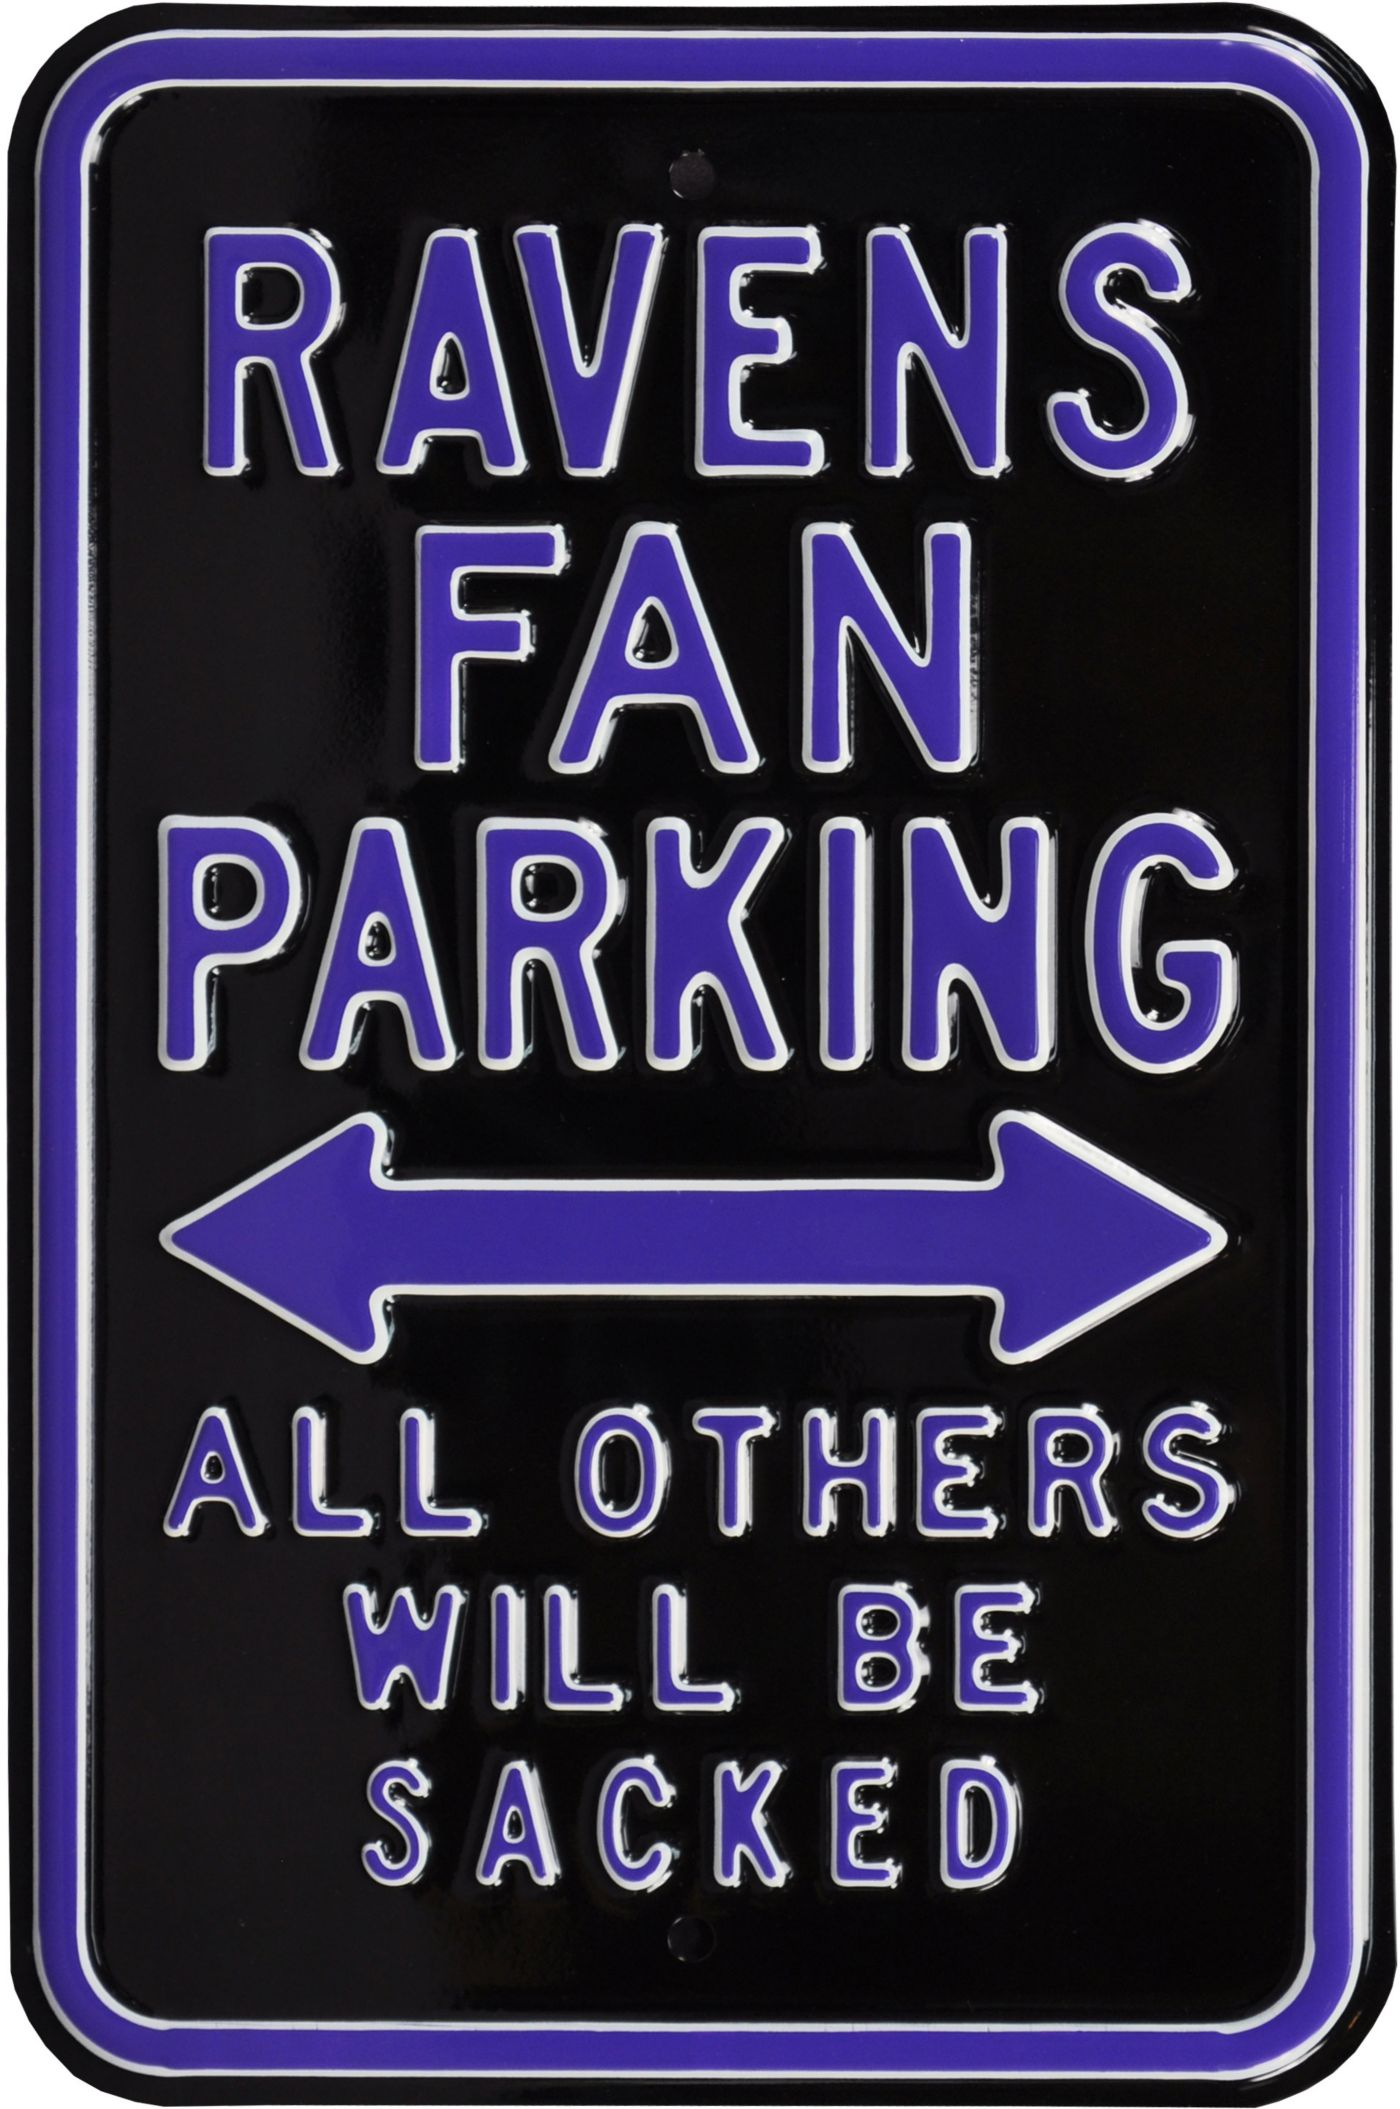 Authentic Street Signs Baltimore Ravens Parking Sign